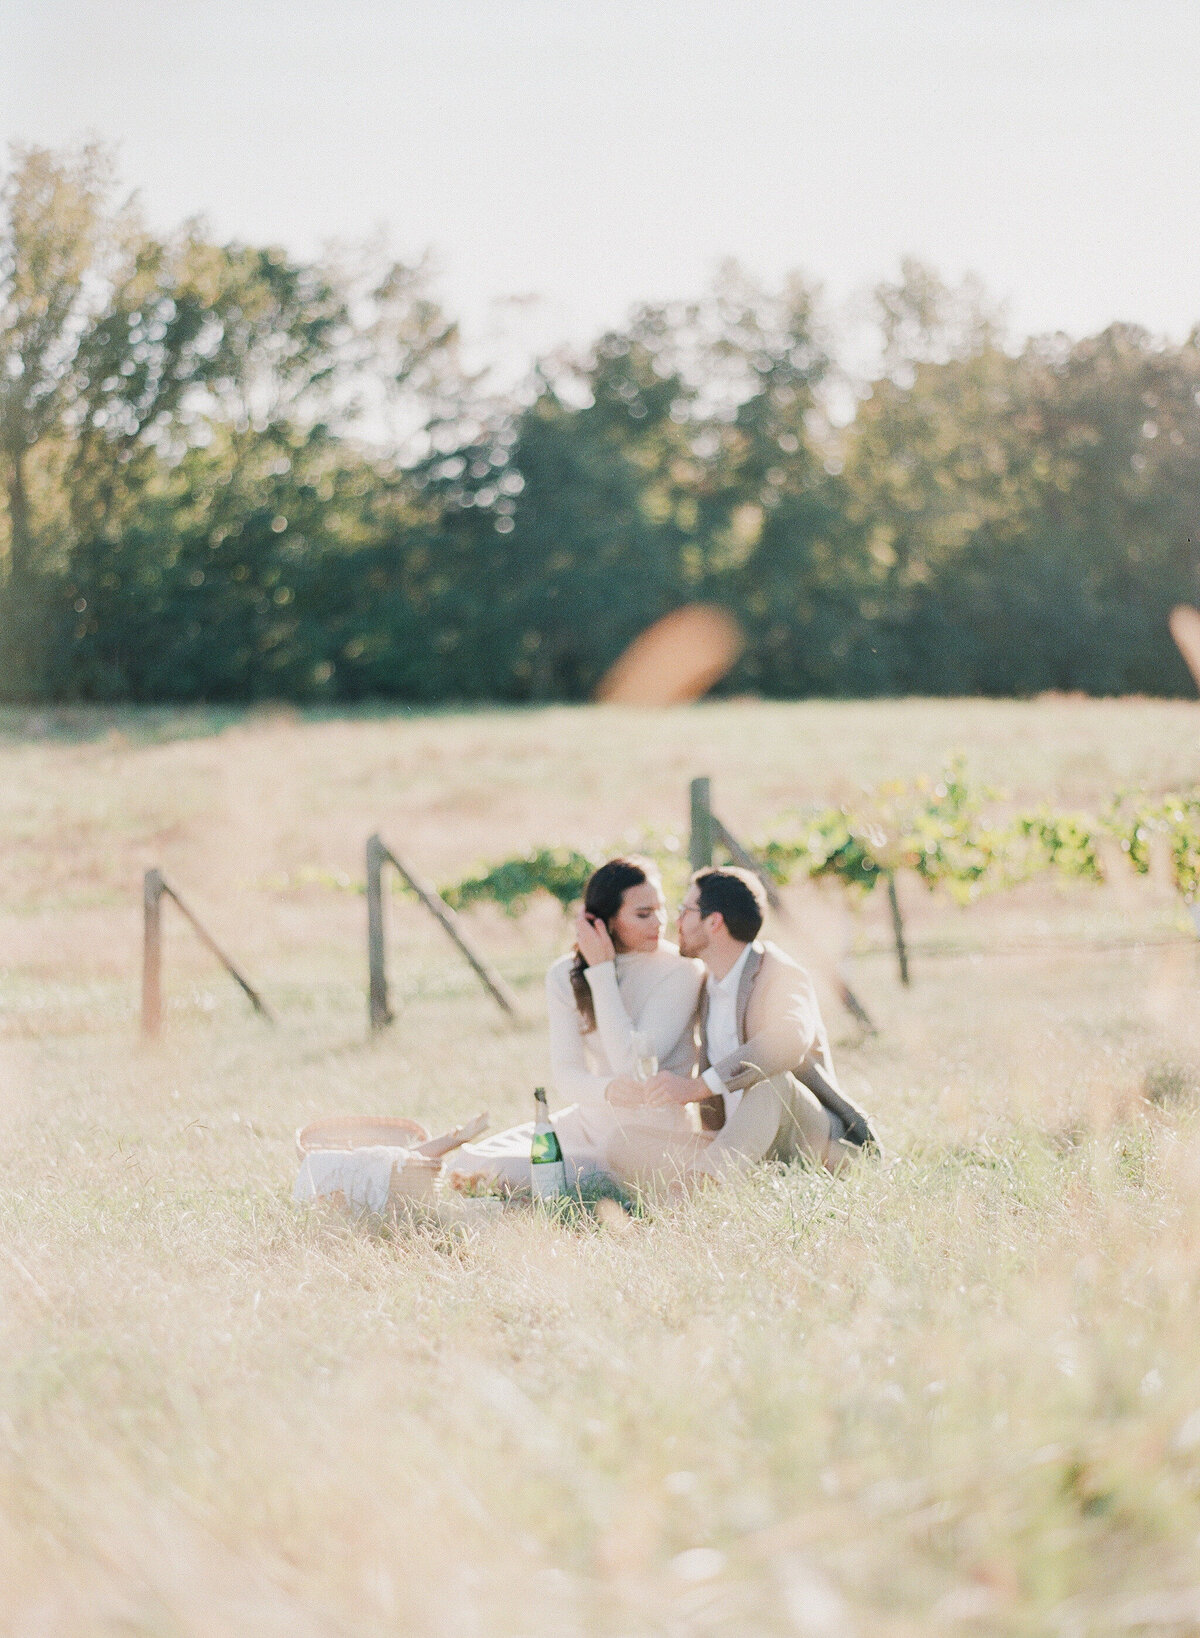 French Vineyard Engagement Photography at The Meadows in Raleigh, NC 17